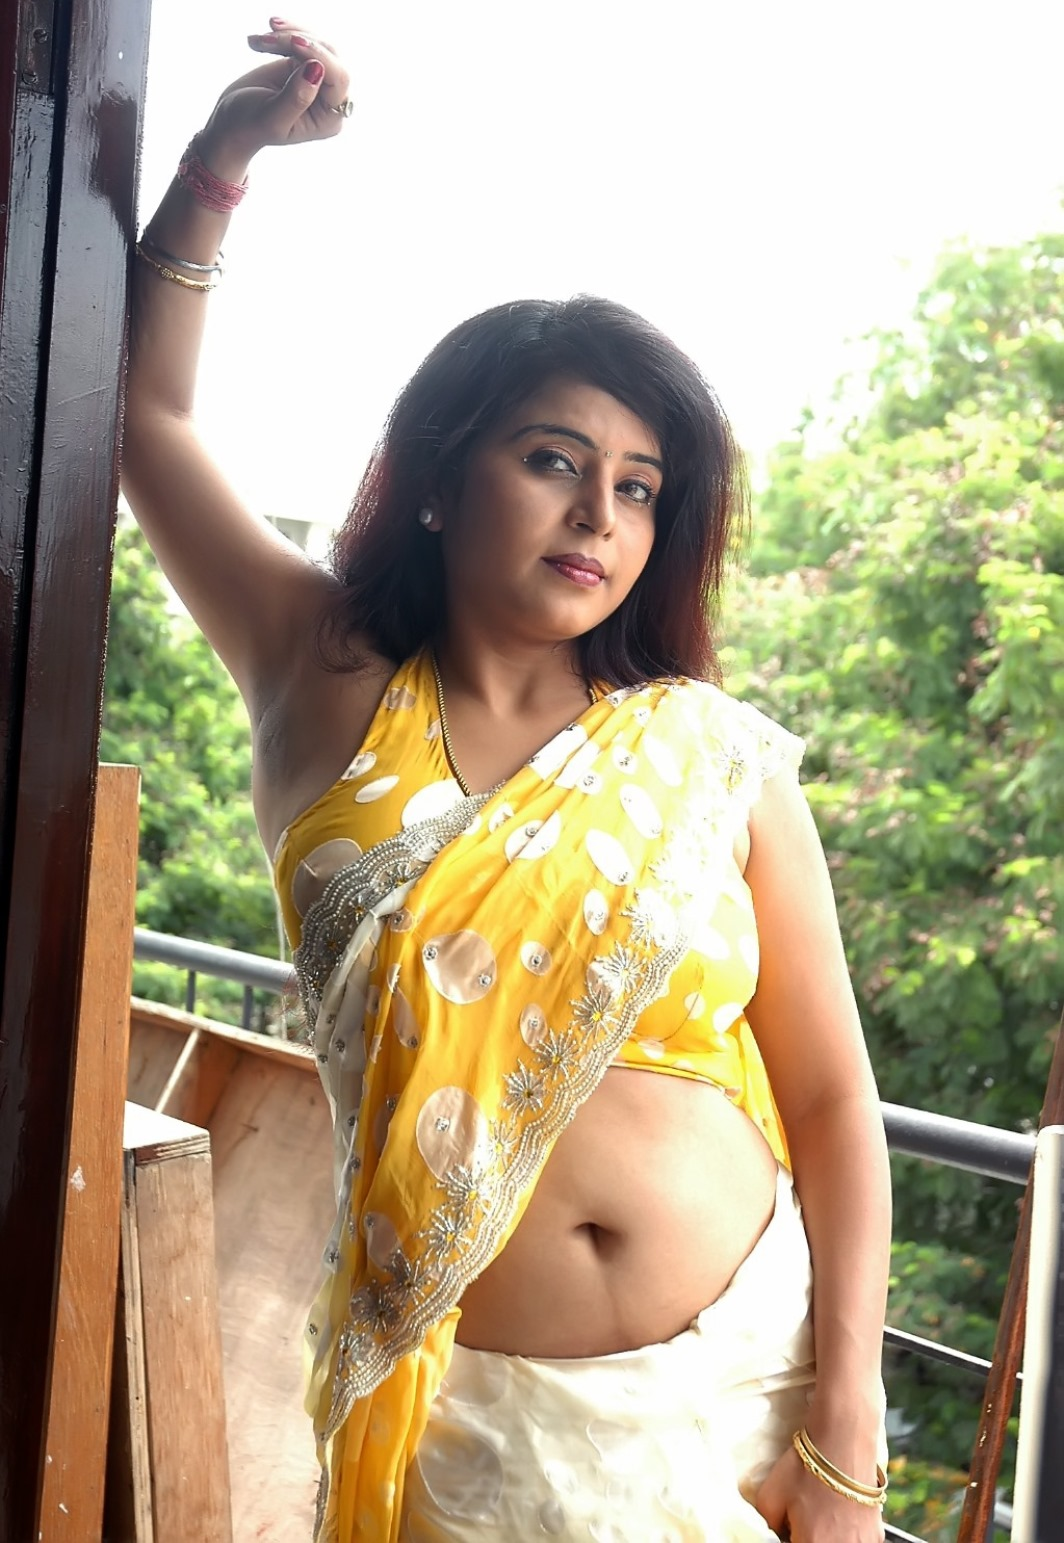 Mallu Movie Actress Hot Photos And Hd Wallpapers Gallery -6900